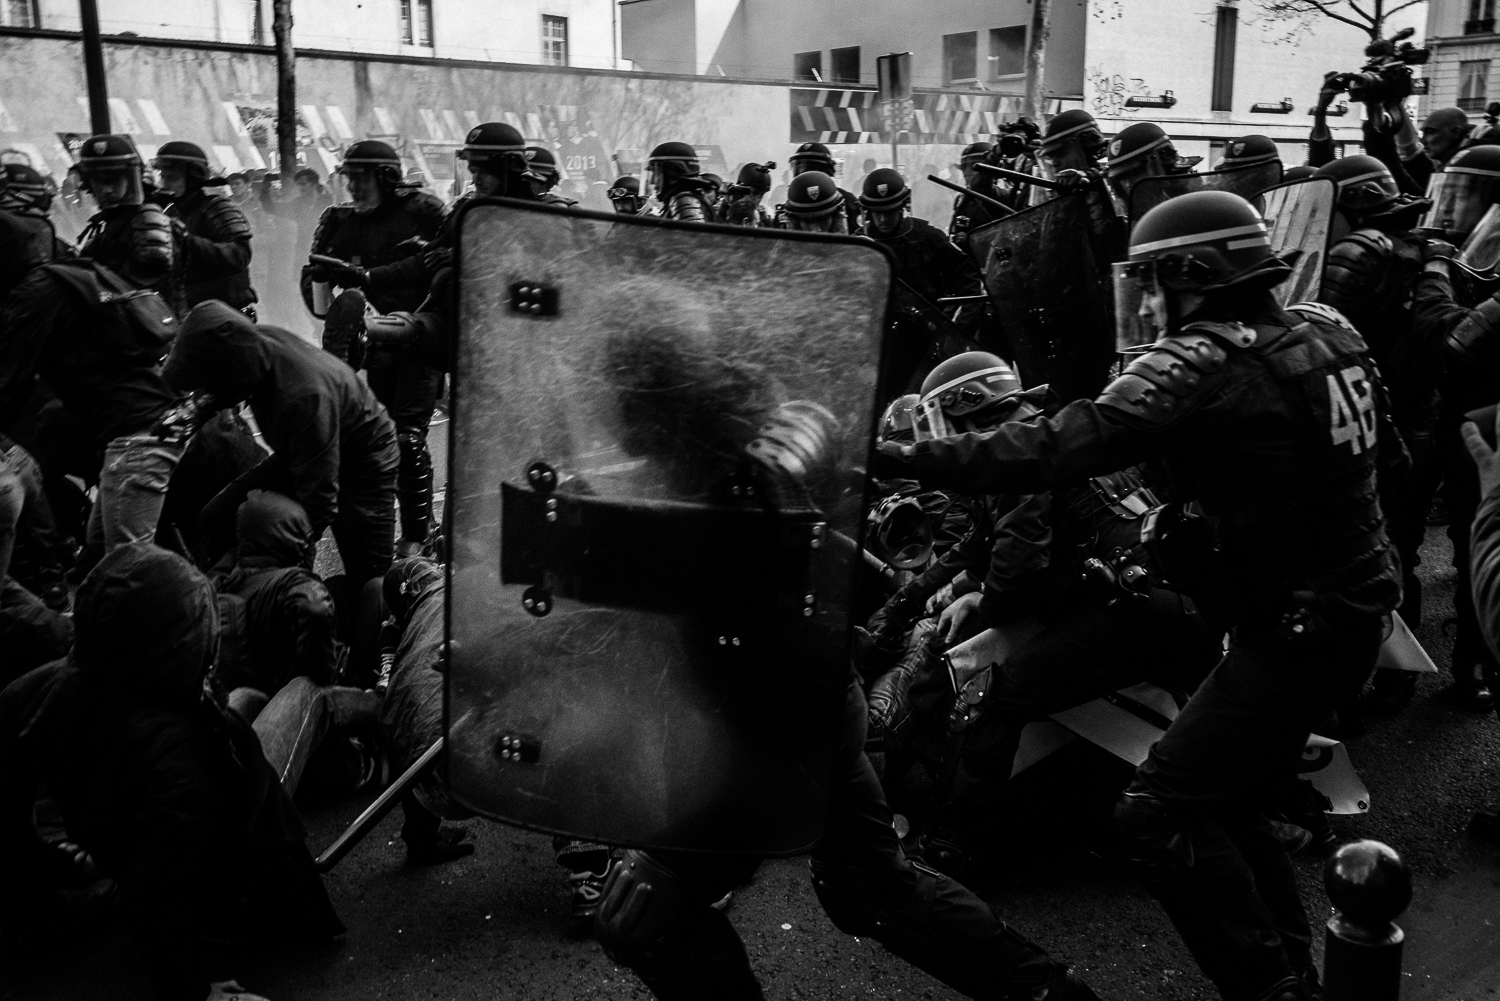 Clashes between protestors and the riot police,5th April 2016.